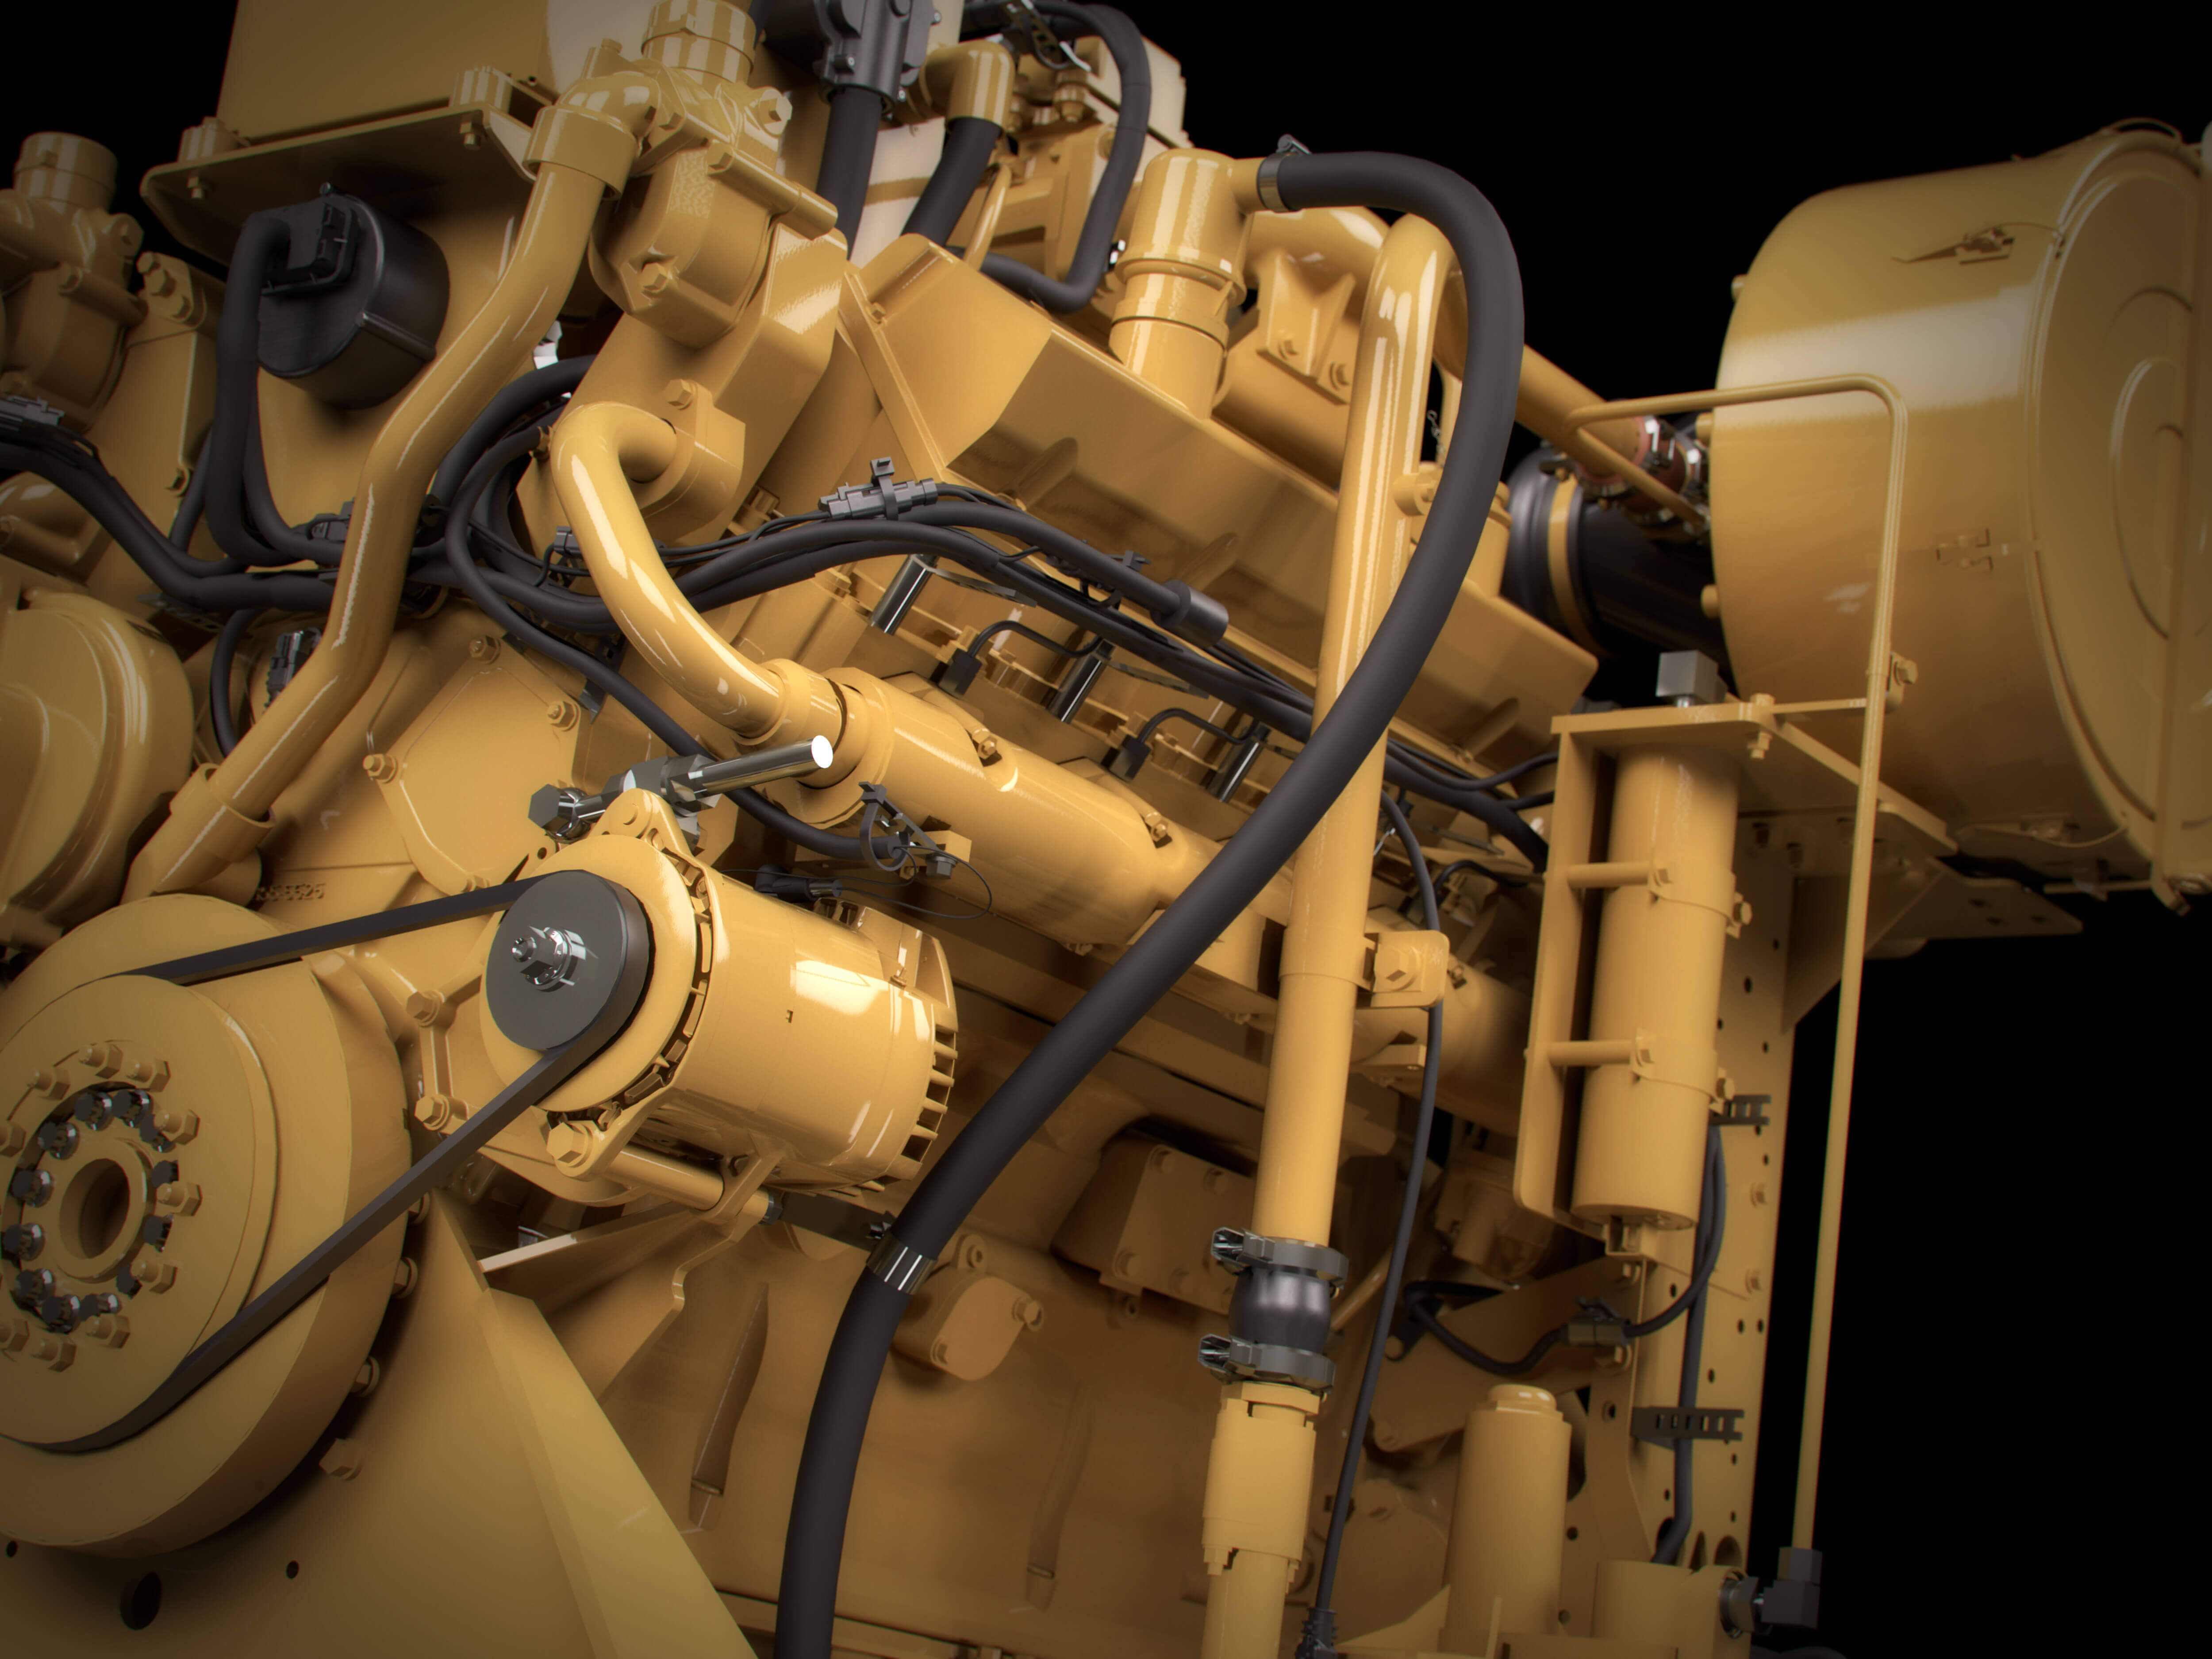 Gas_engine_CG137-8.jpg